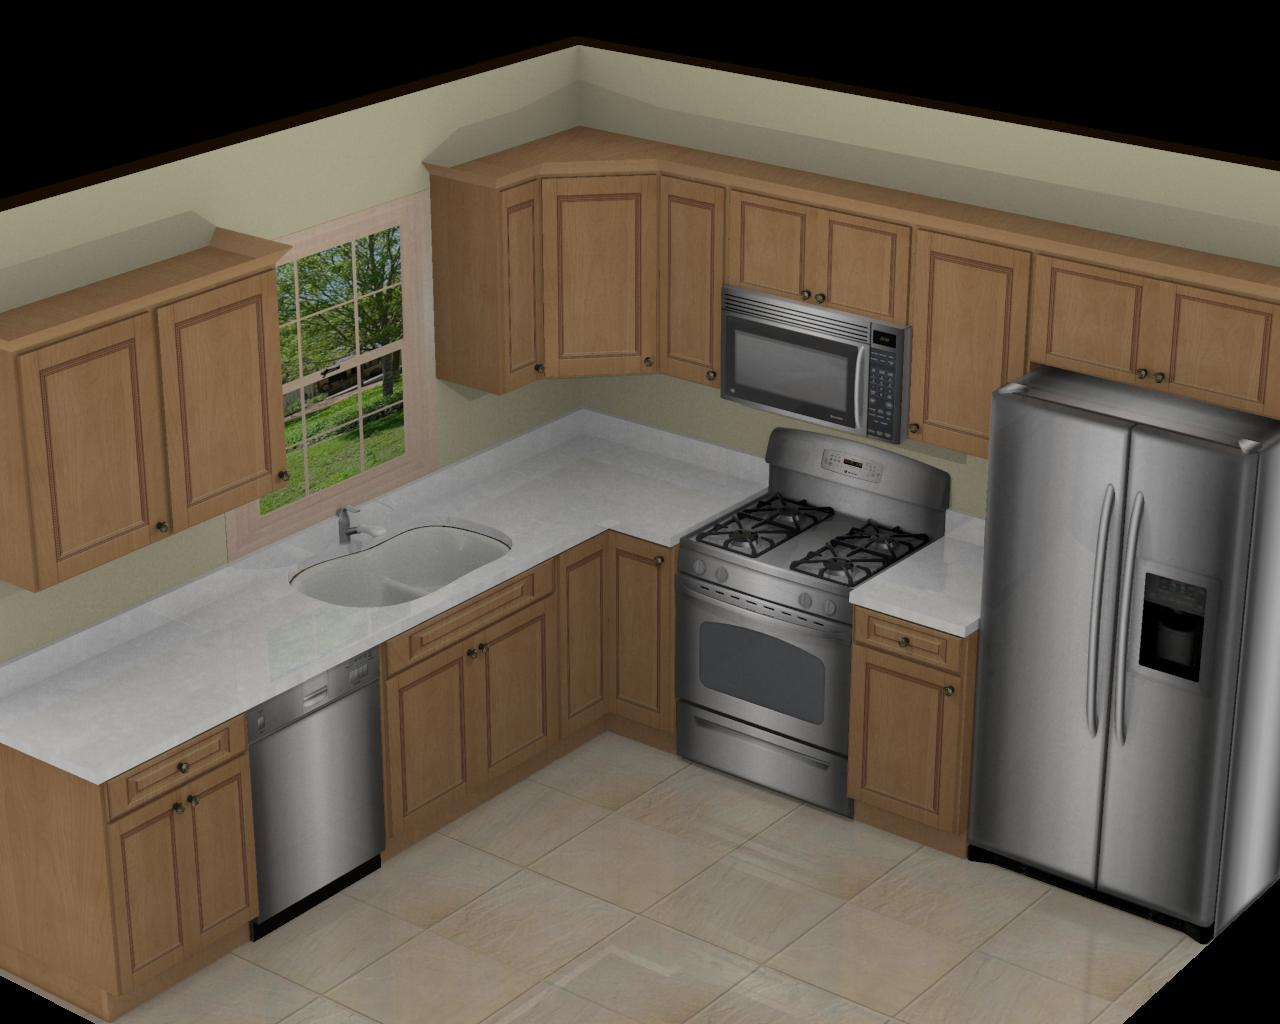 Foundation dezin decor 3d kitchen model design for Kitchen design ideas pictures